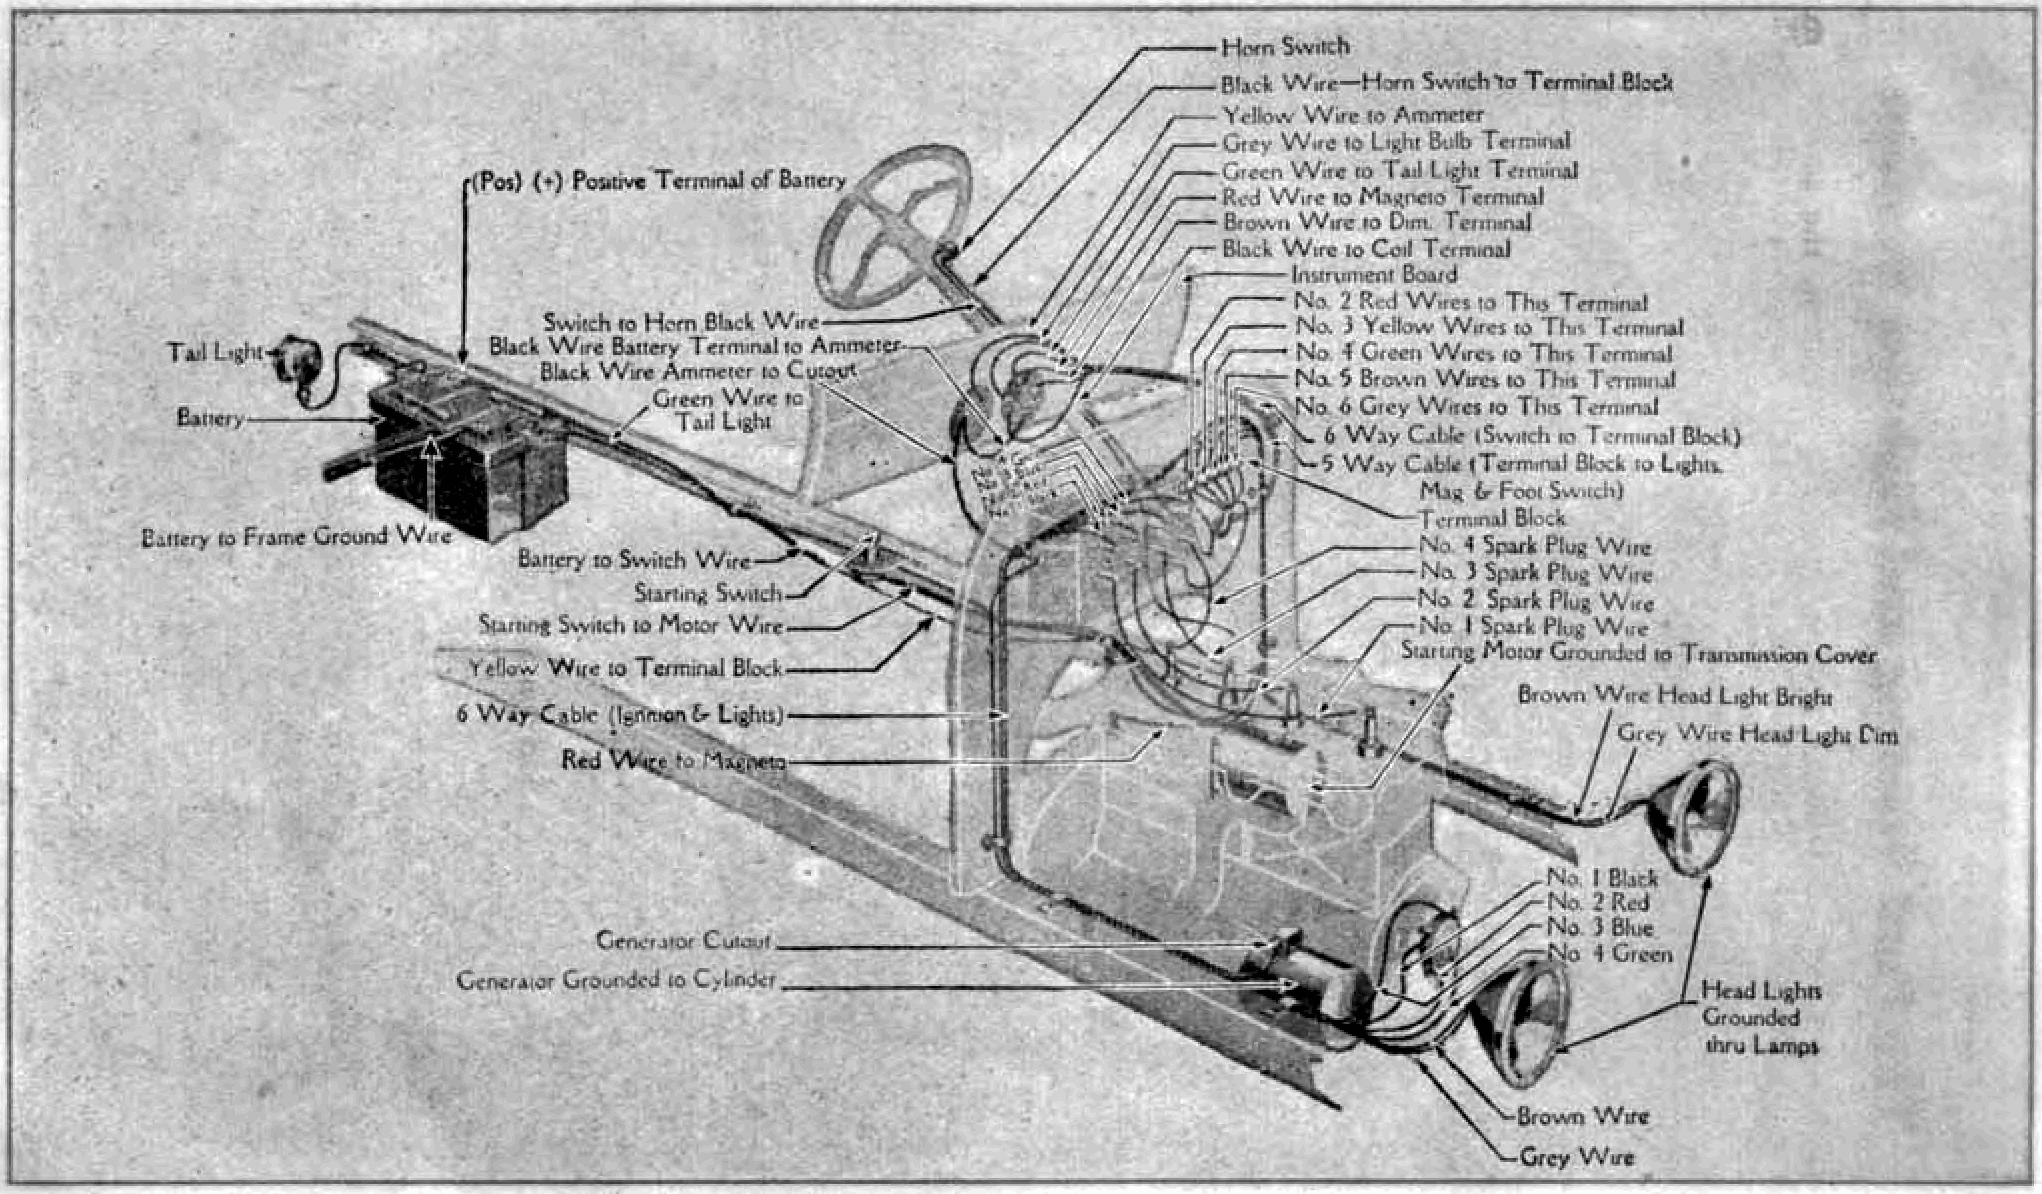 Ford_model_t_1919_d055_wiring_diagram_of_cars_equipped_with_a_starter